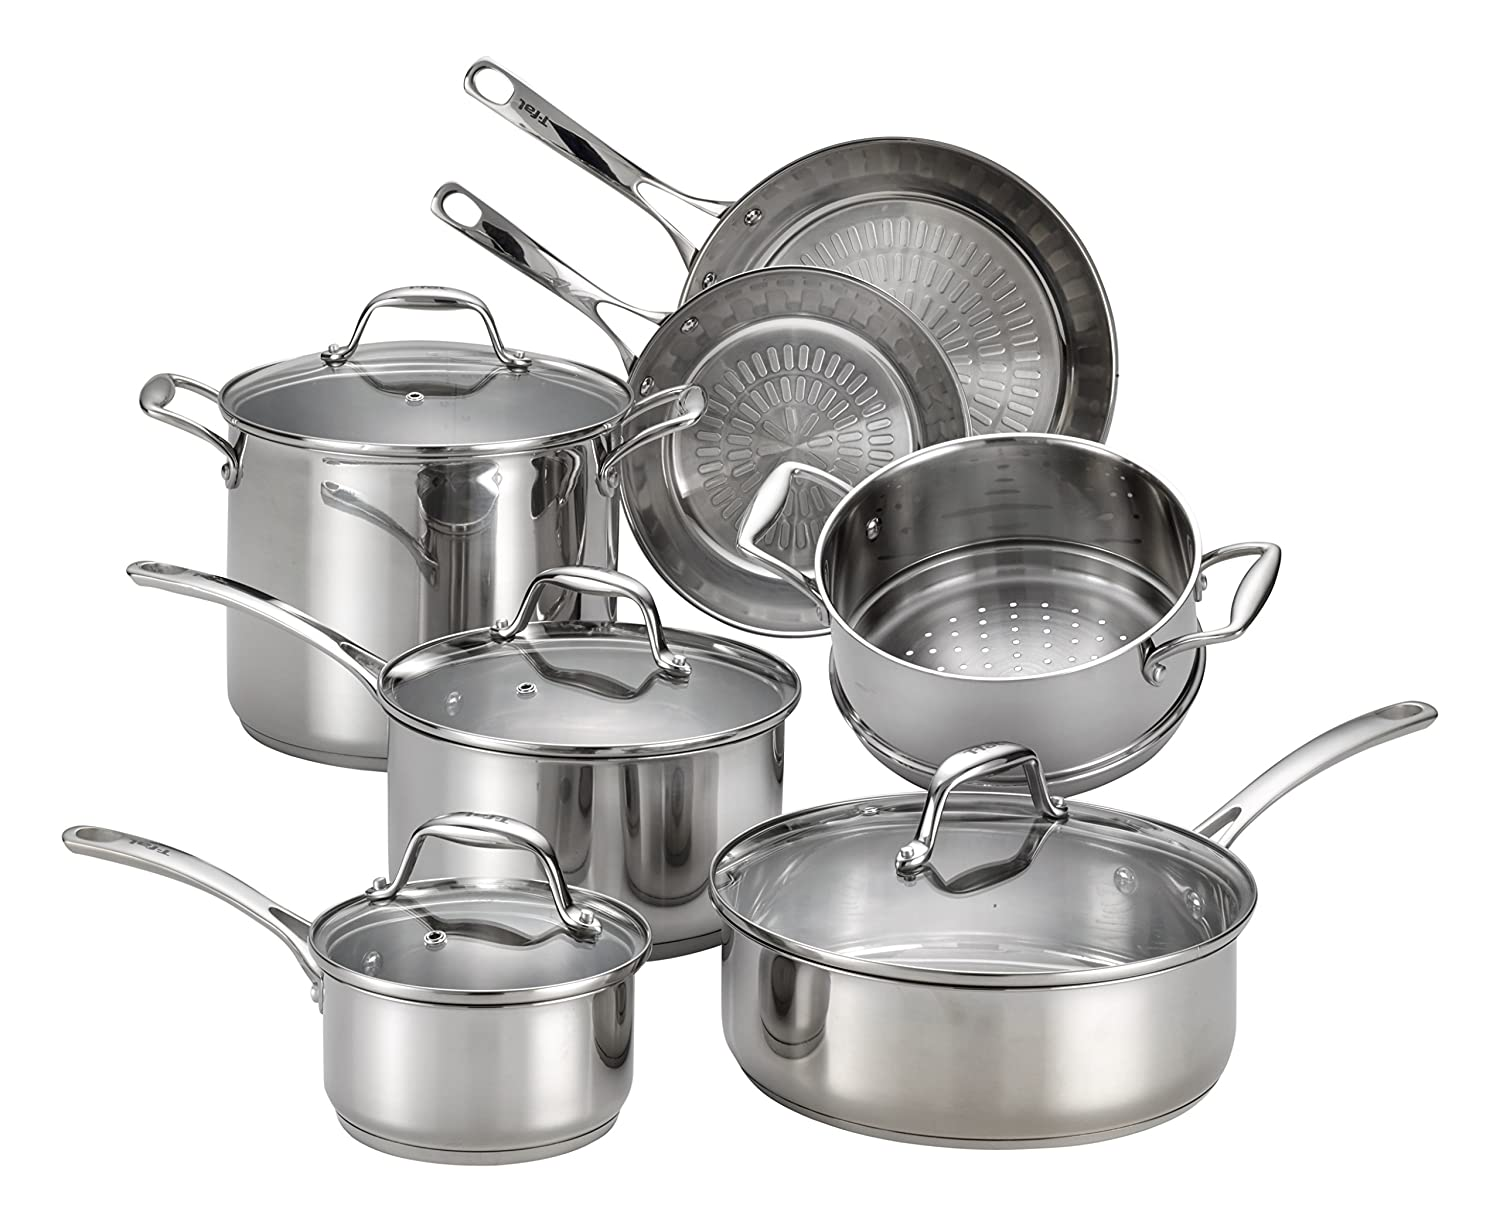 T-fal H800SB Performa X Stainless Steel Dishwasher Safe Oven Safe Cookware Set, 11-Piece, Silver Groupe SEB 2100097389